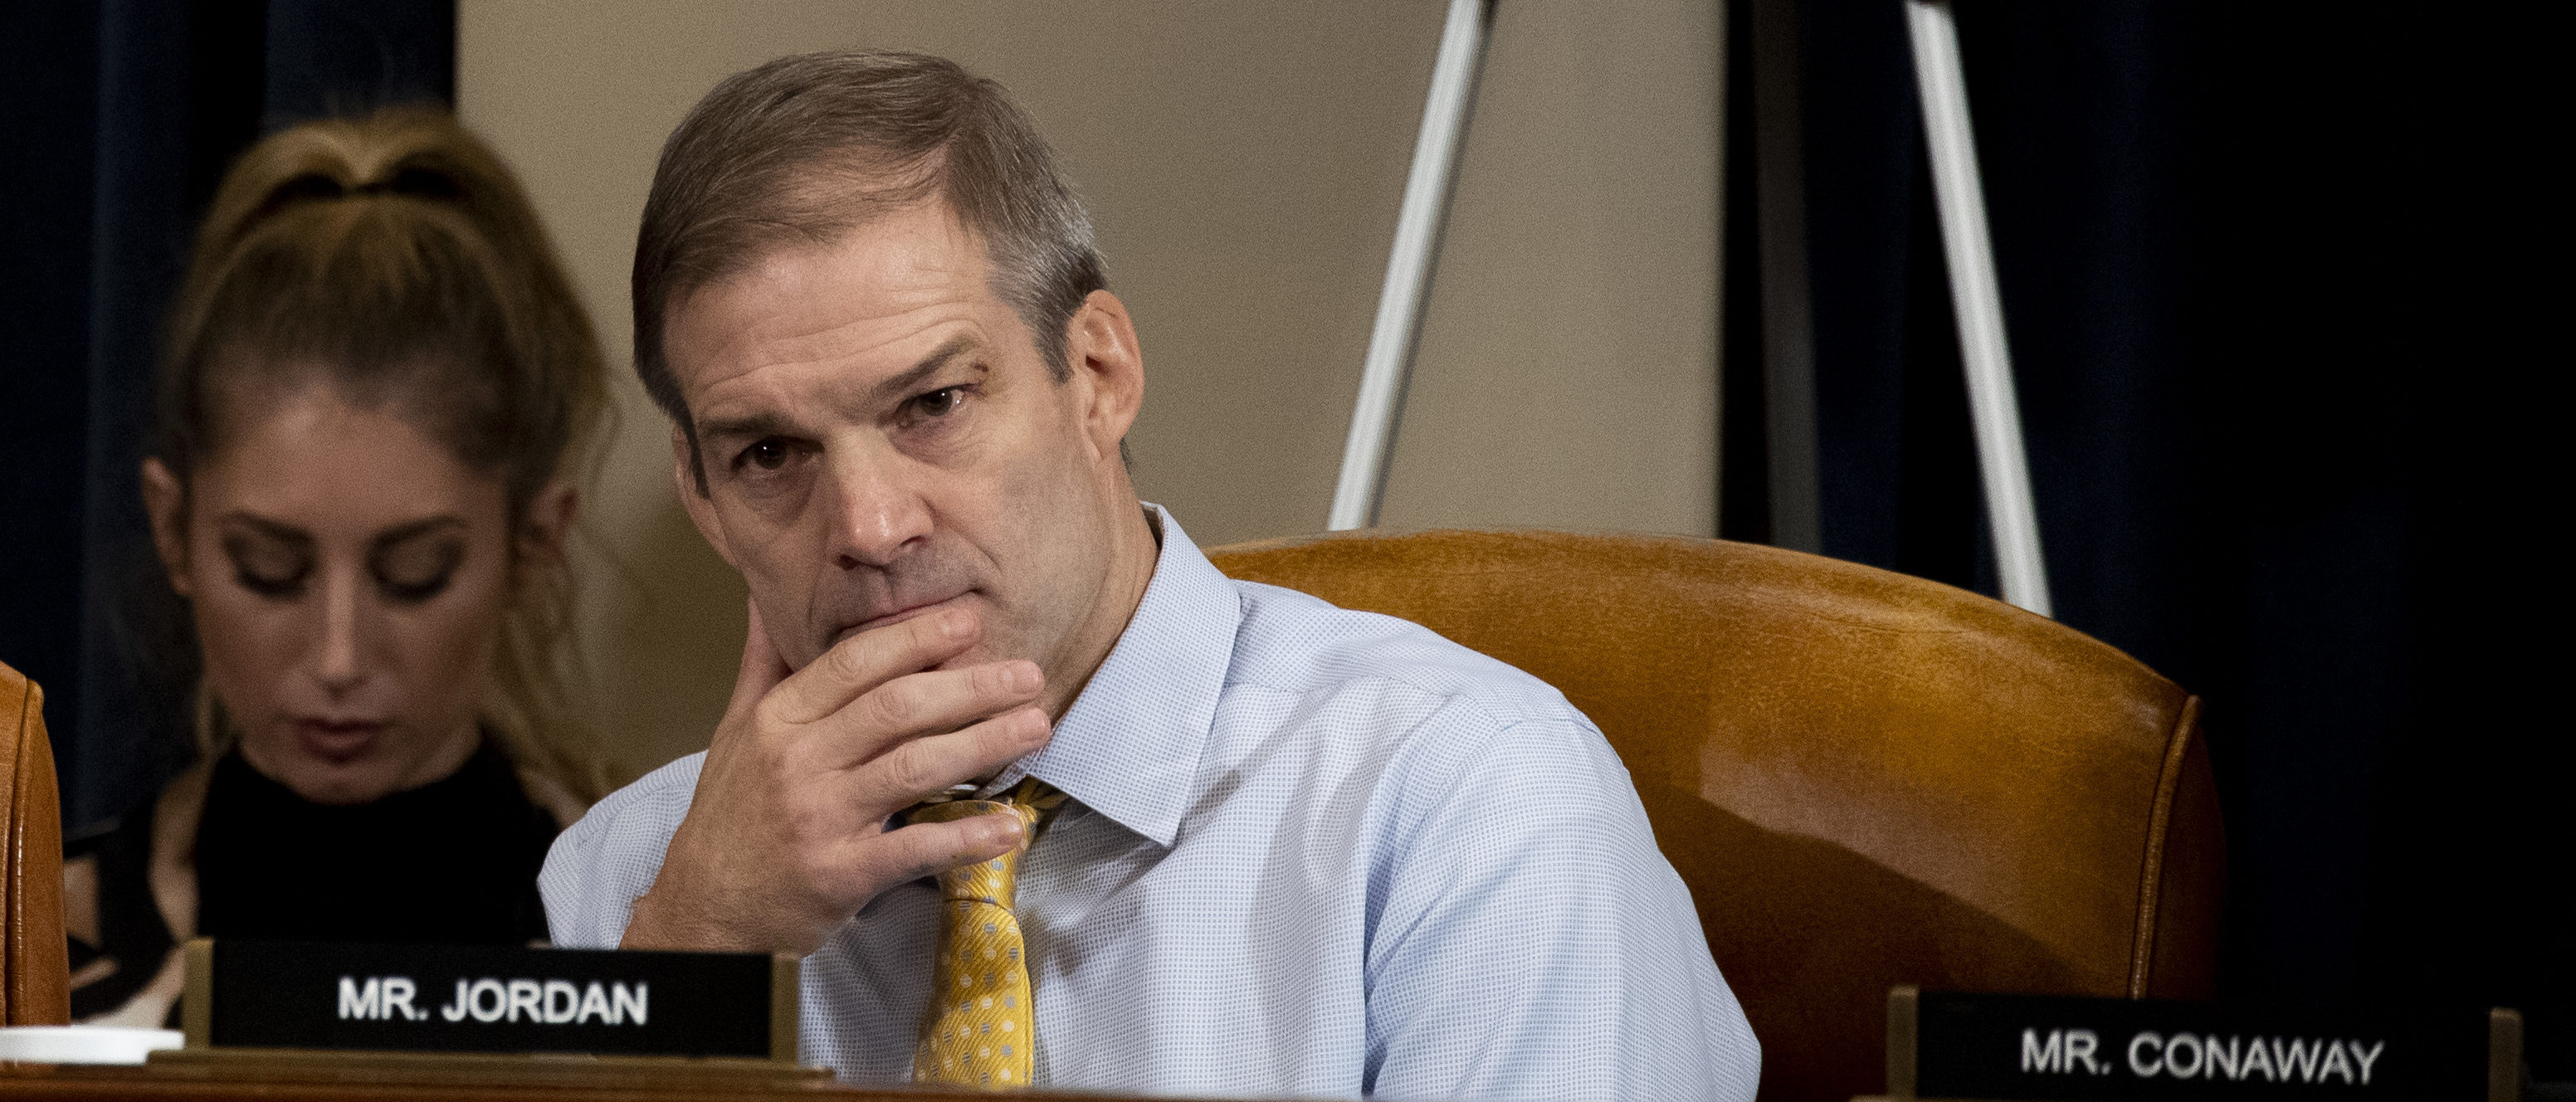 Calling All Patriots: We're Getting Ready For Our Interview With Jim Jordan - What Do You Want Us To Ask Him?